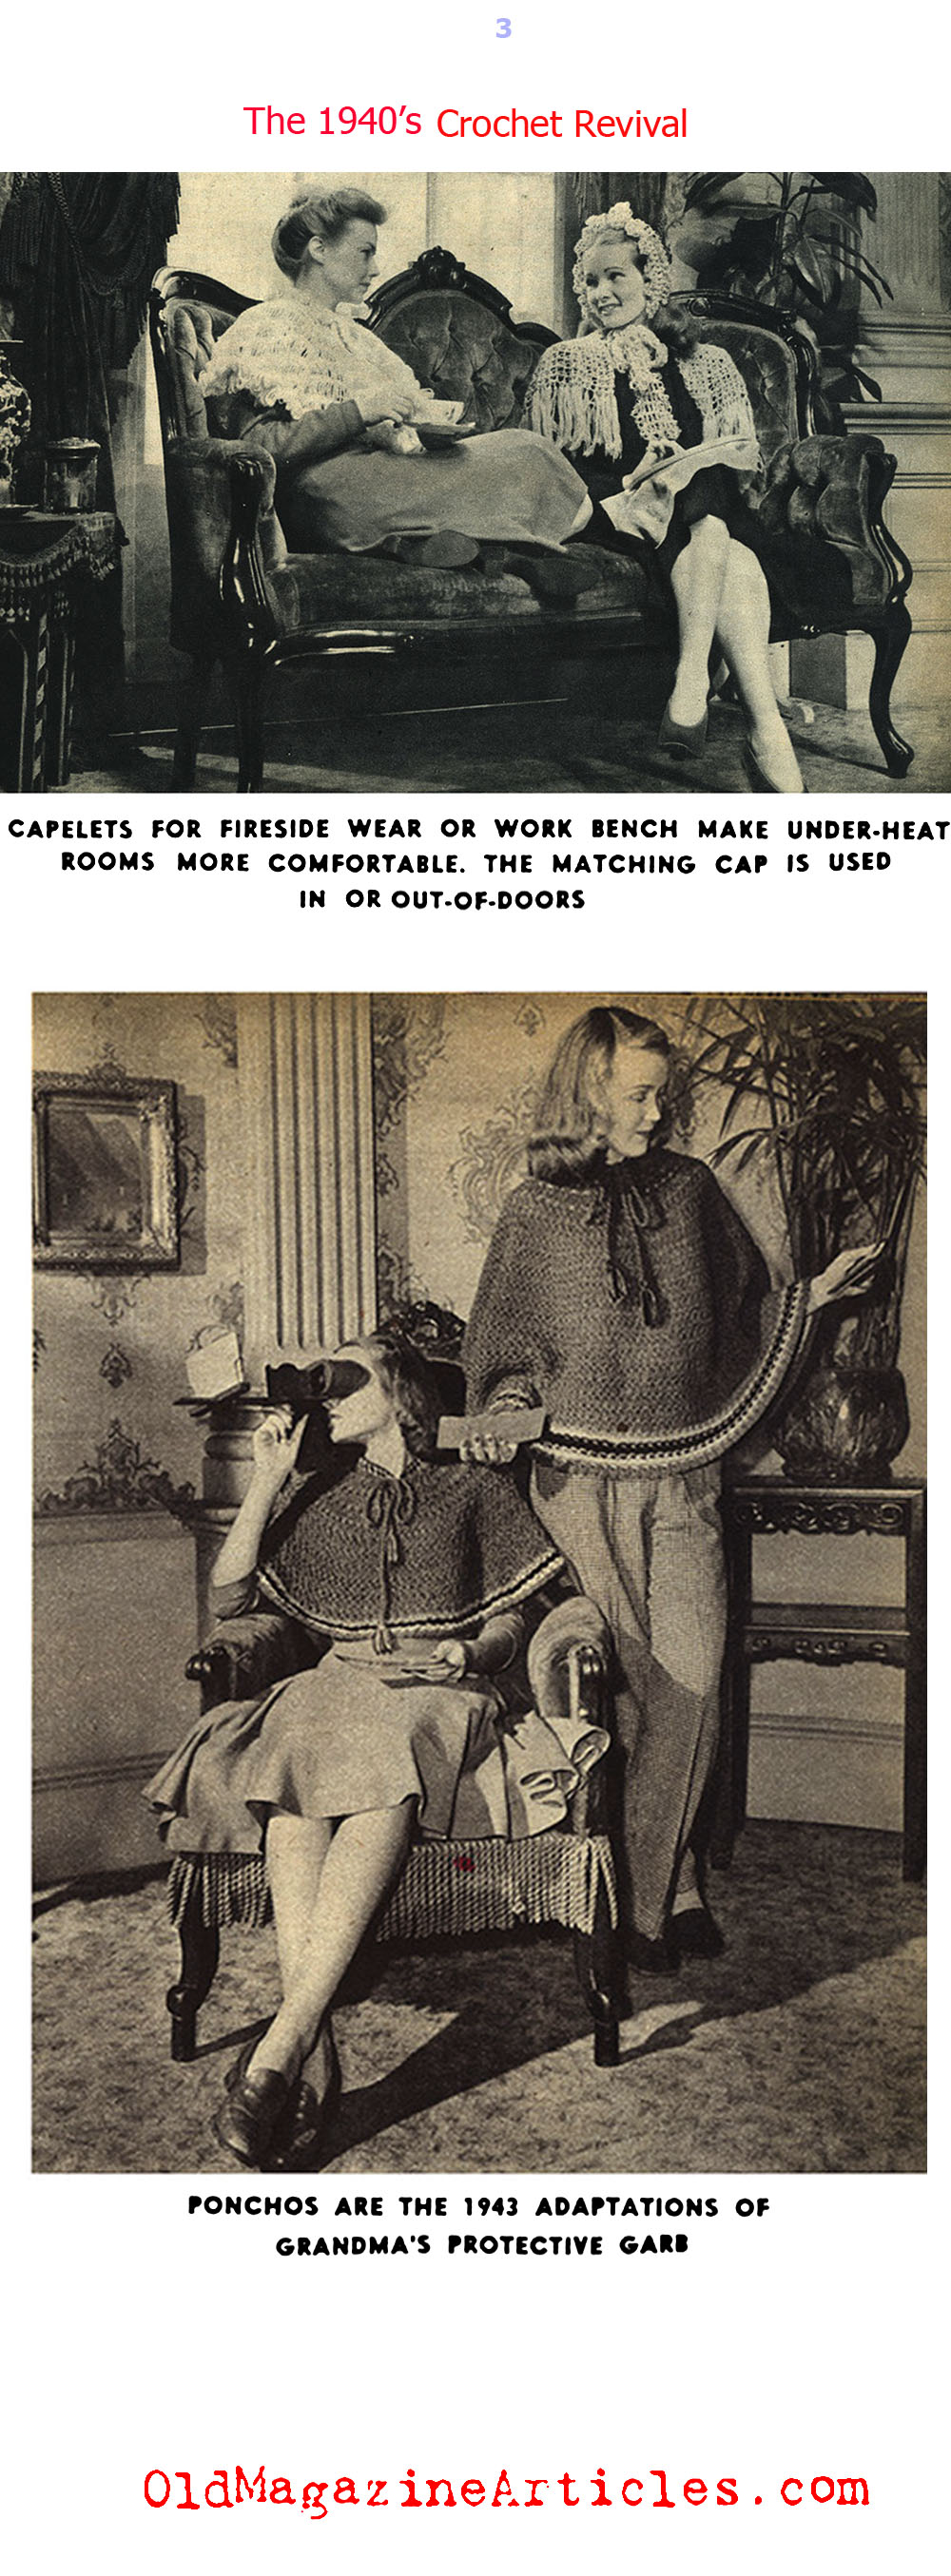 Crochet Made a Come-Back on the W.W. II Fashion Front (Click Magazine, 1943)